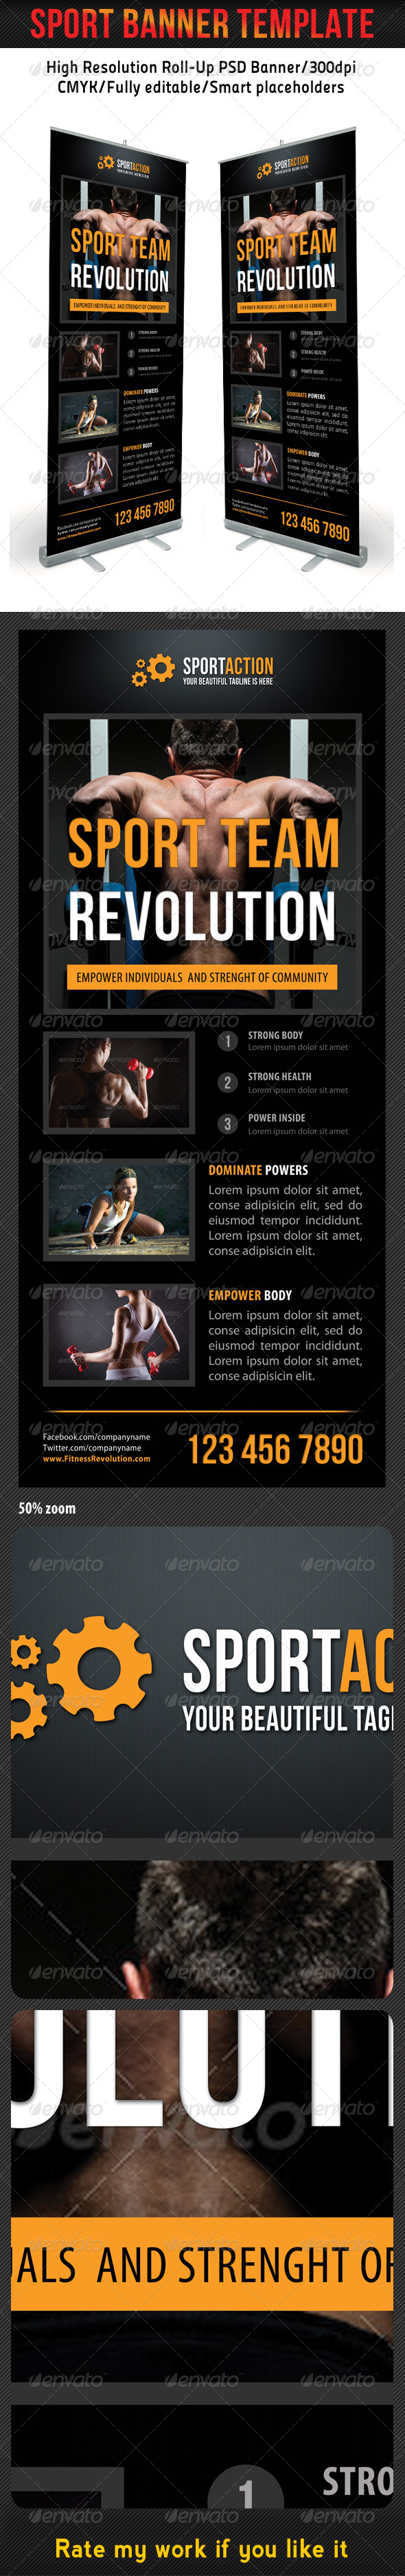 Sport Banner Template 12 - Signage Print Templates